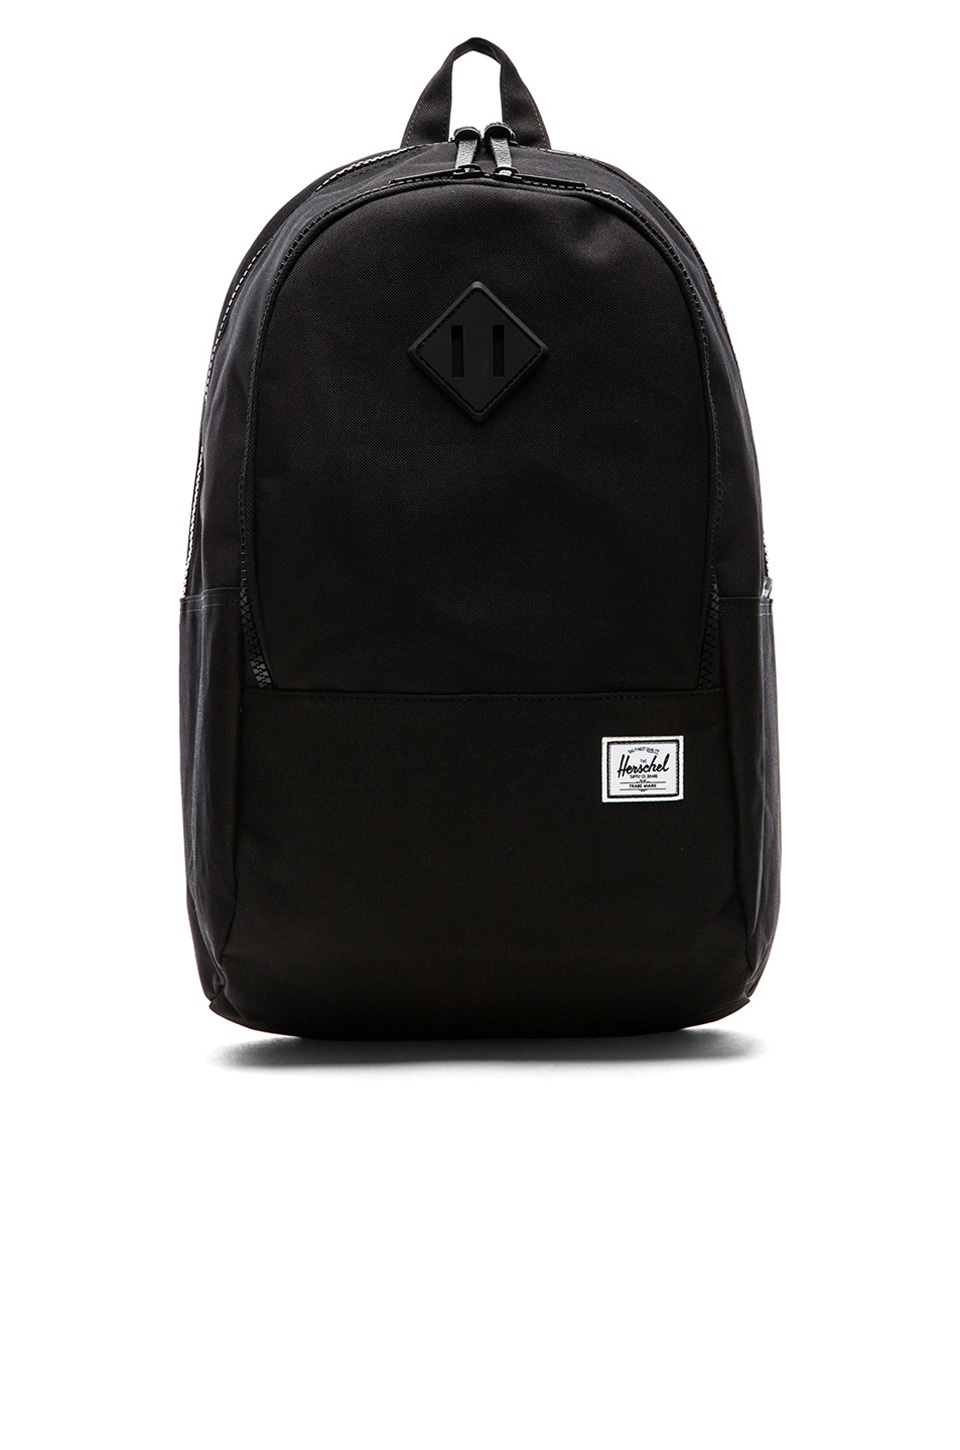 Herschel Supply Co. Nelson Backpack in Black